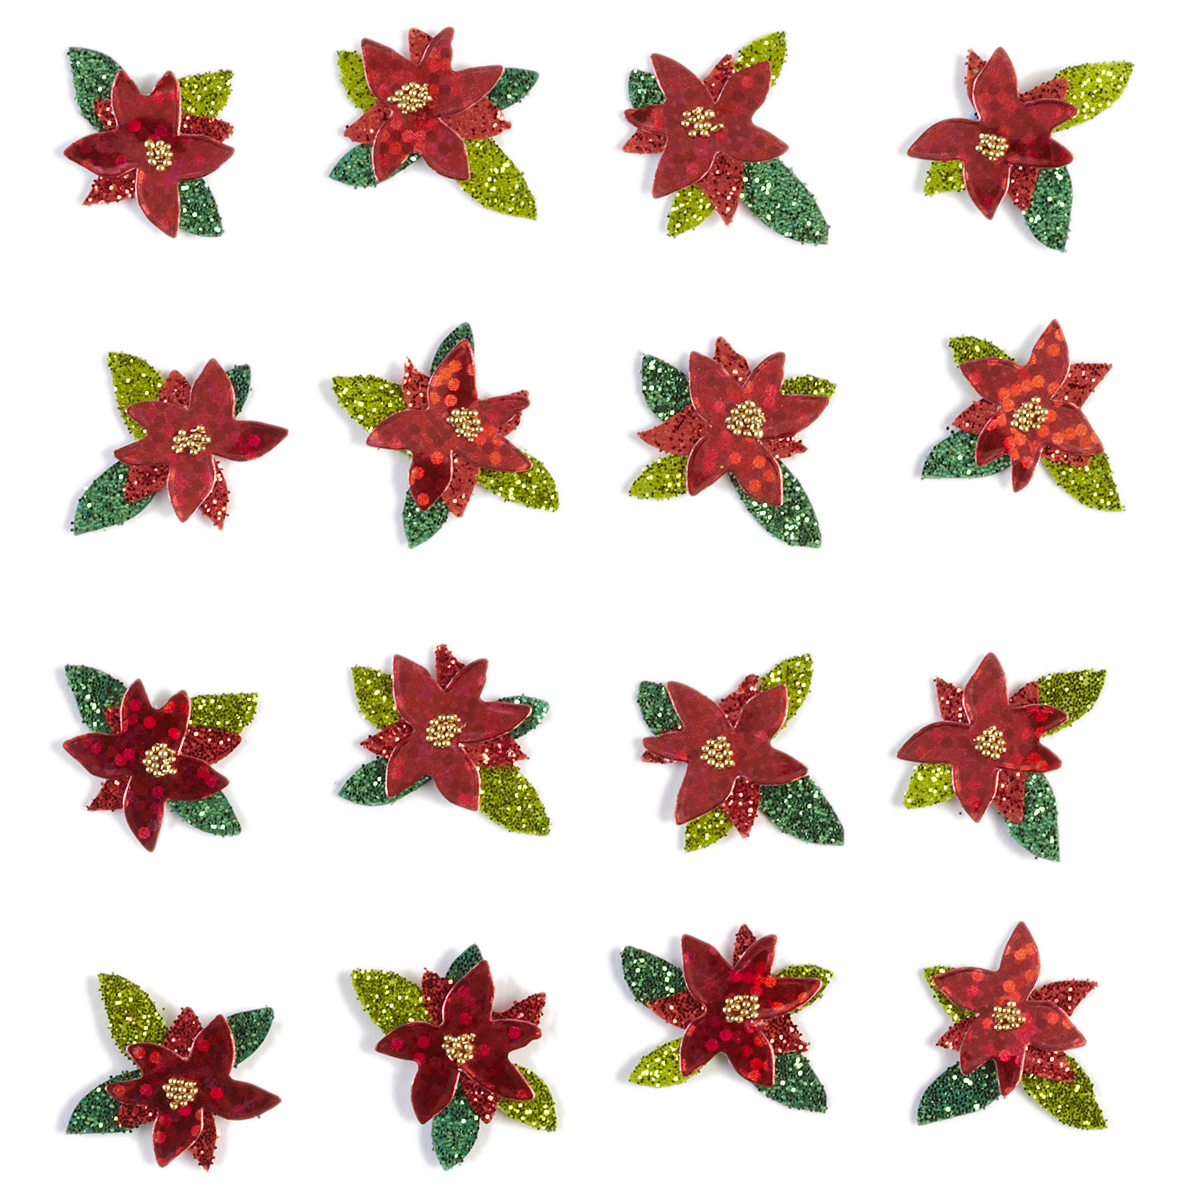 NEW 3 pc LAWN DECOR Plant Sticks Flower JOLEE/'S BY YOU 3D Small Embellishments